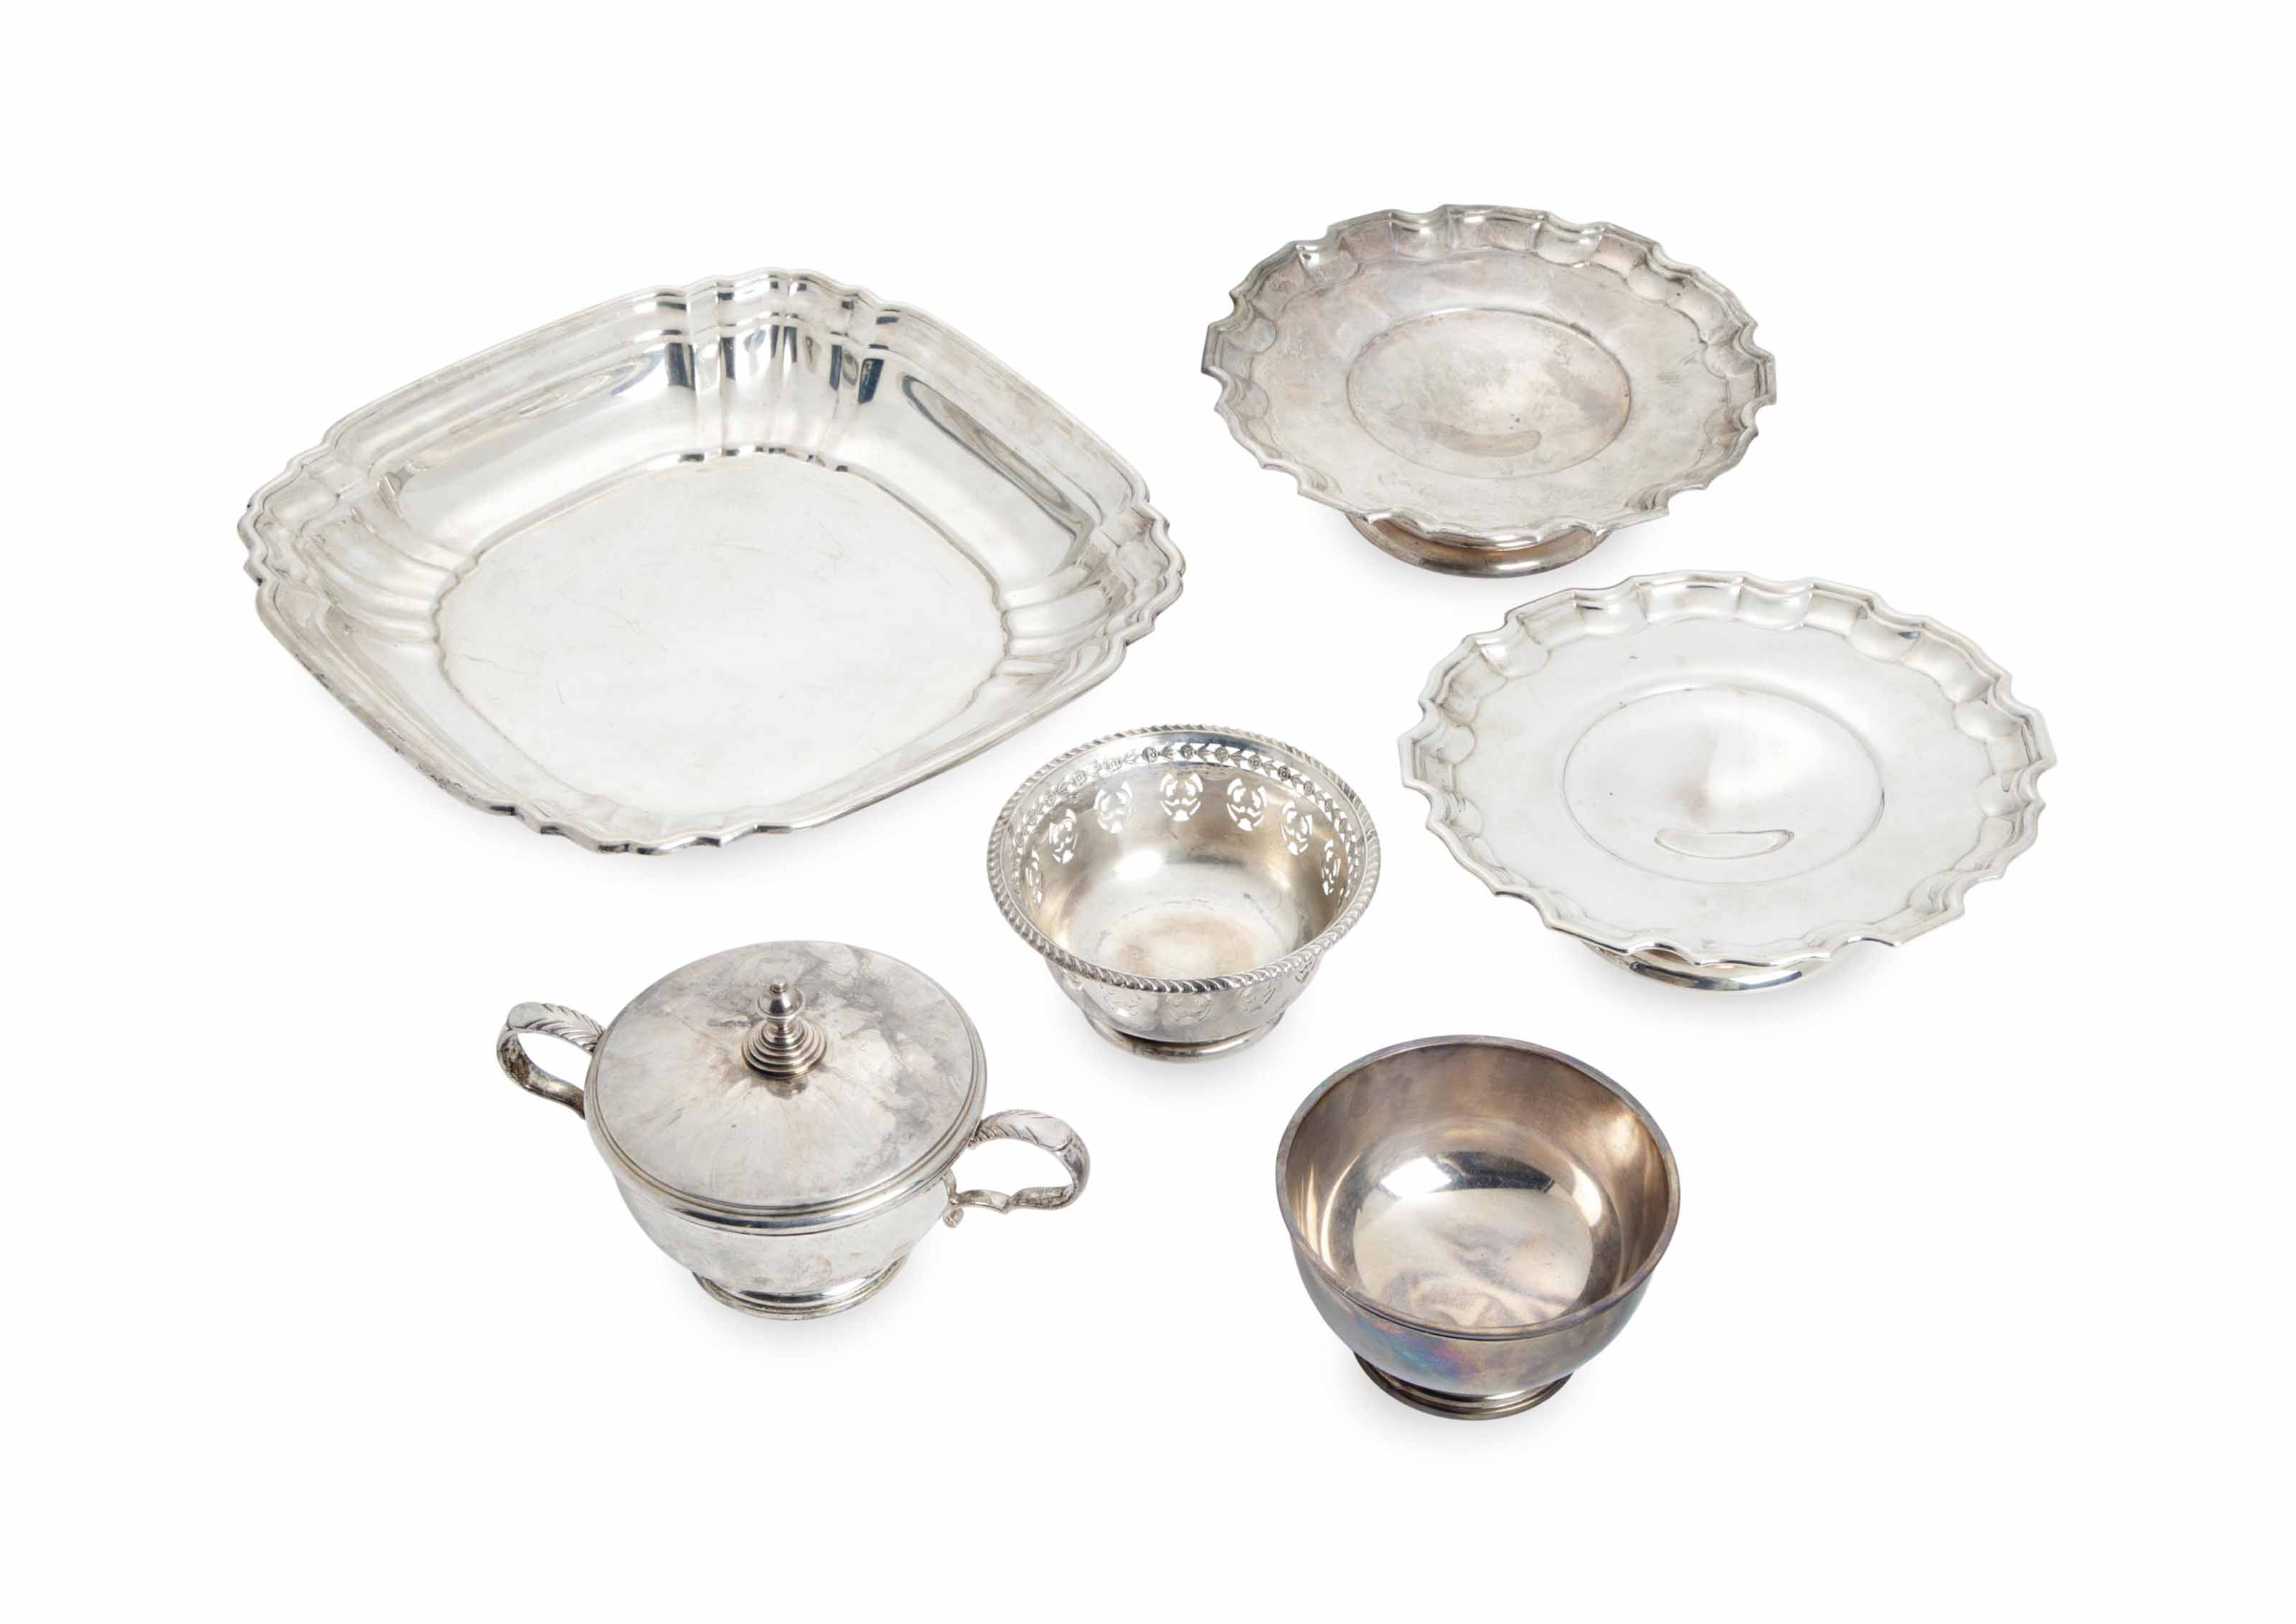 A GROUP OF FRENCH AND AMERICAN SILVER TABLE SERVING WARES,